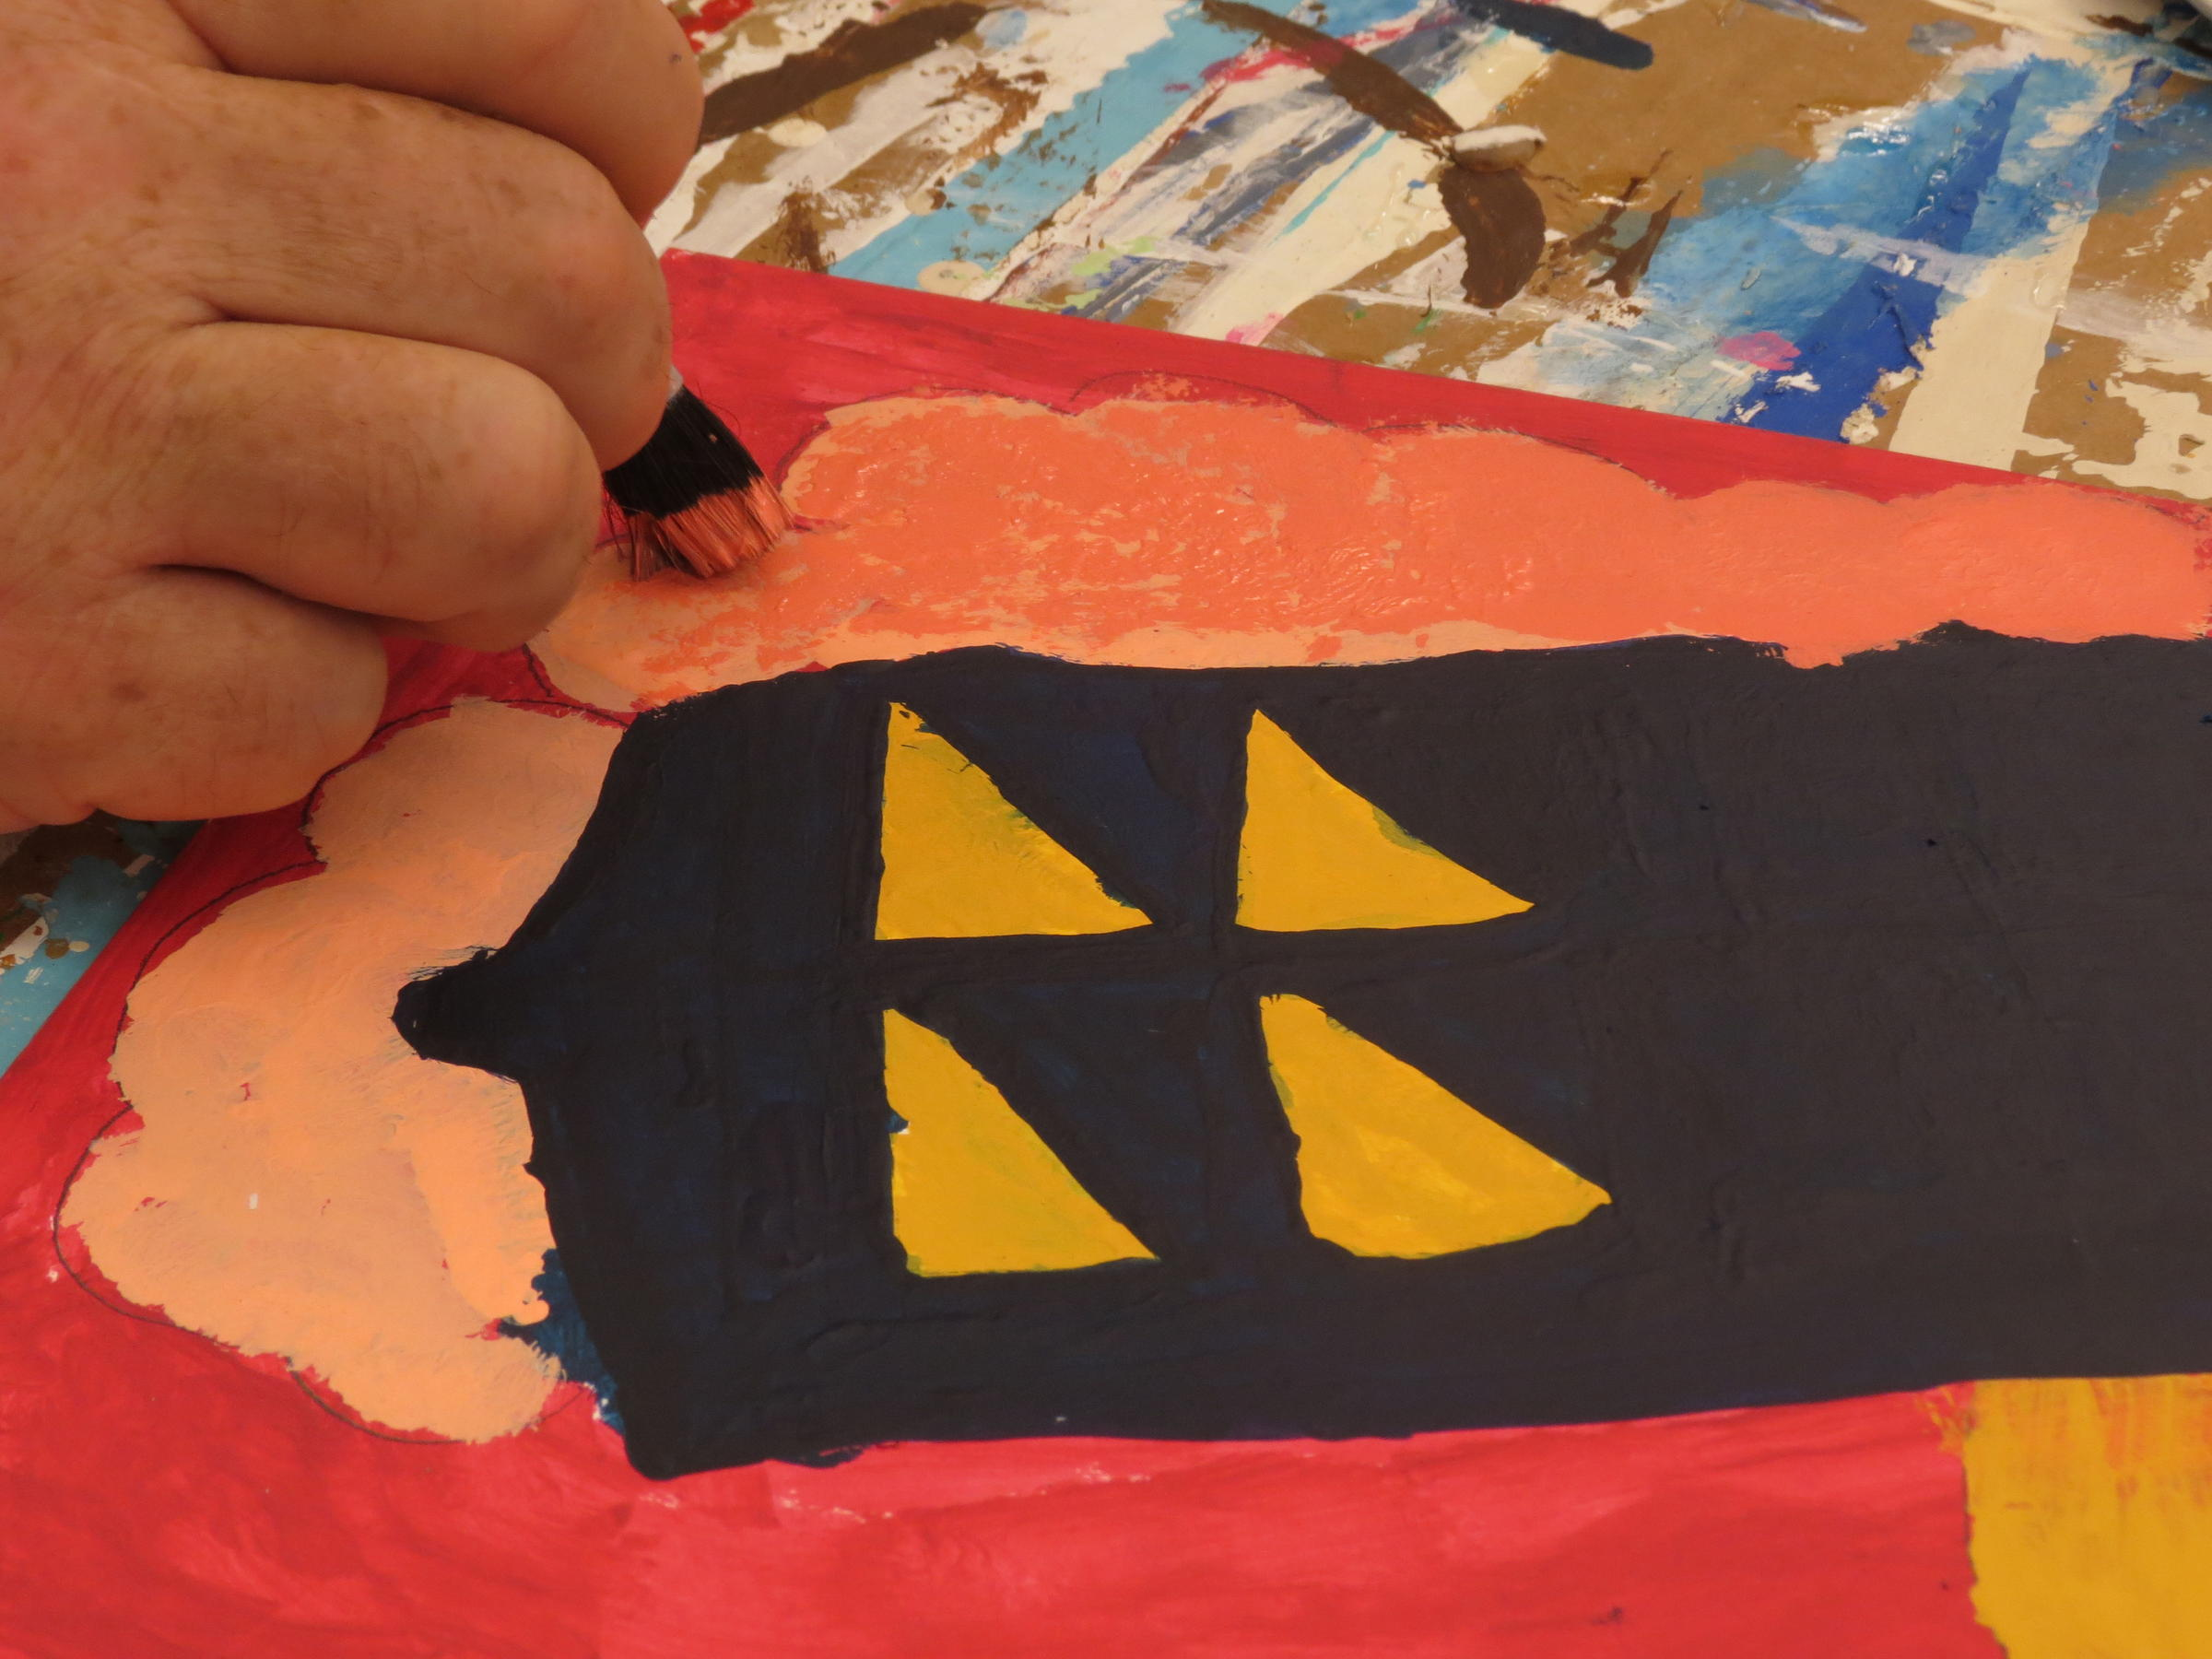 mrc provides jobs for artists disabilities mental illness wmuk view slideshow 2 of 6